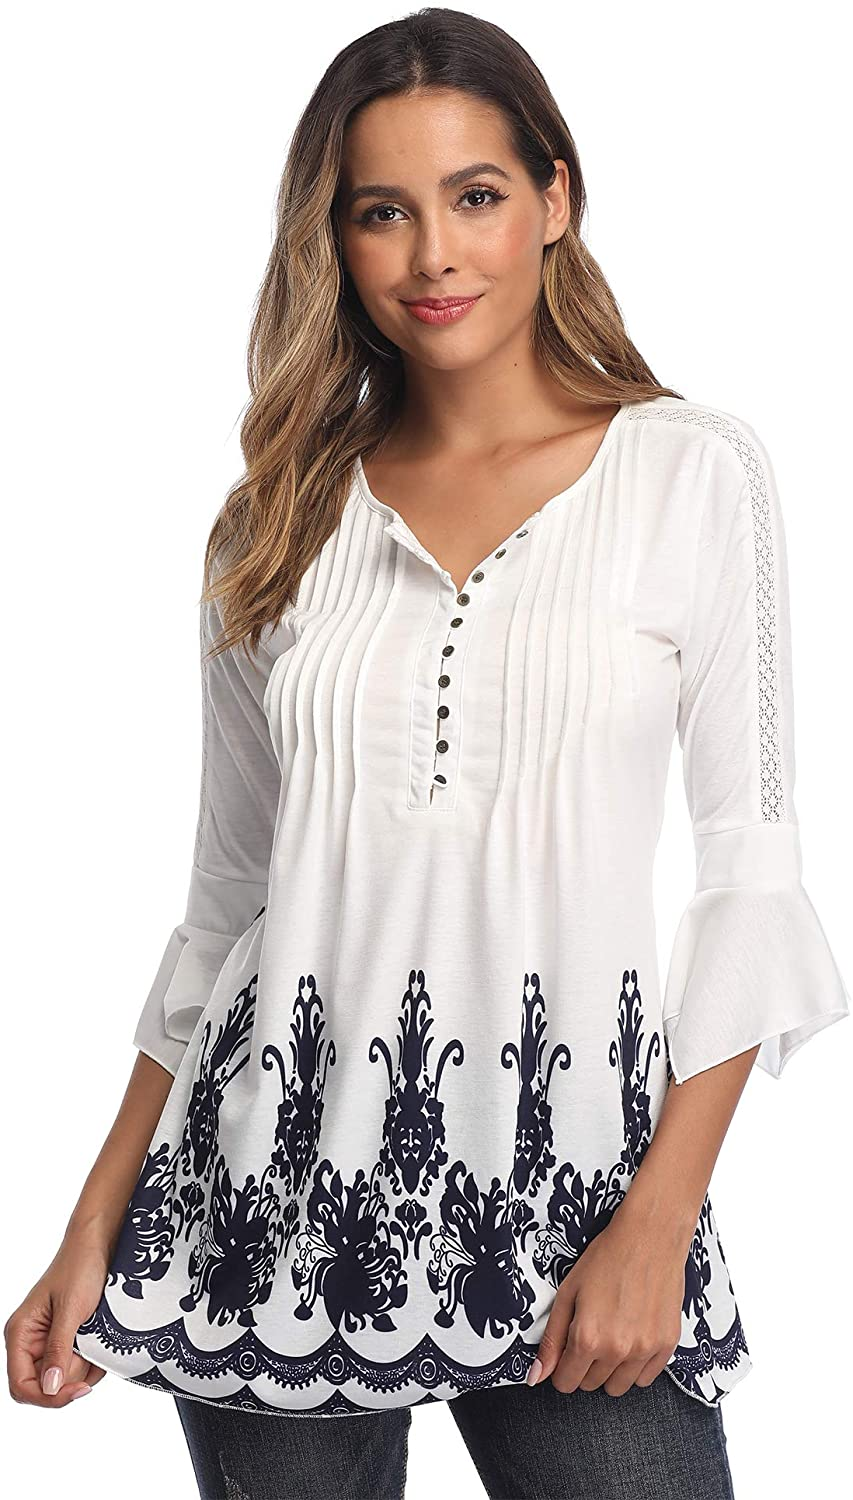 Women's Lace Tunic Tops Henley T Shirt Inset Blouse Casual V Neck 3/4 Bell Sleeve Shirts